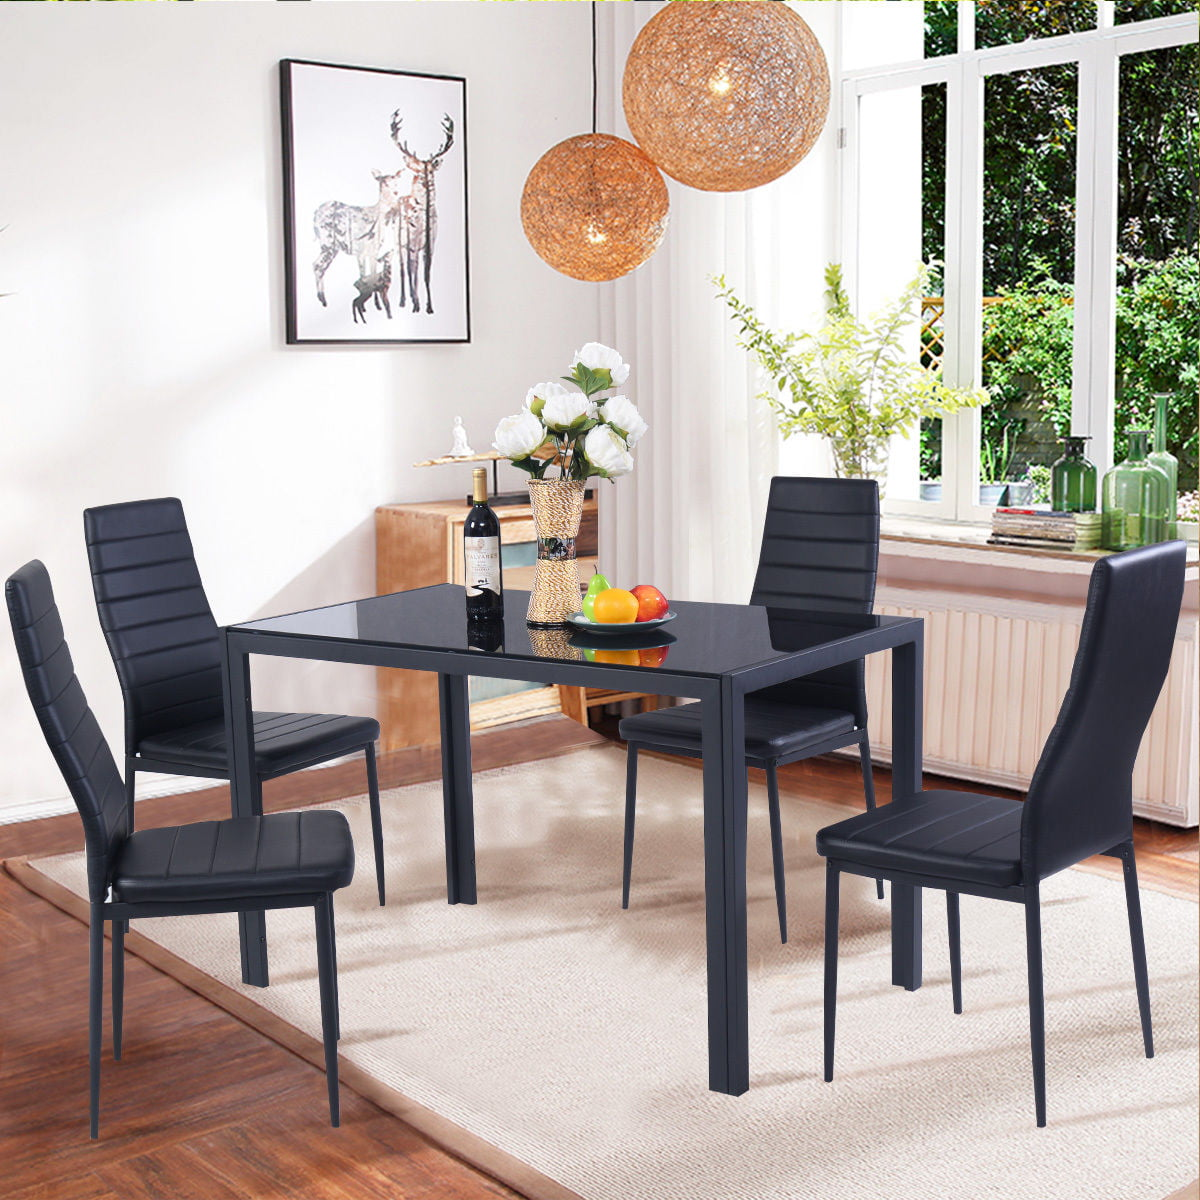 Dining Table In Kitchen Kitchen Dining Furniture Walmartcom